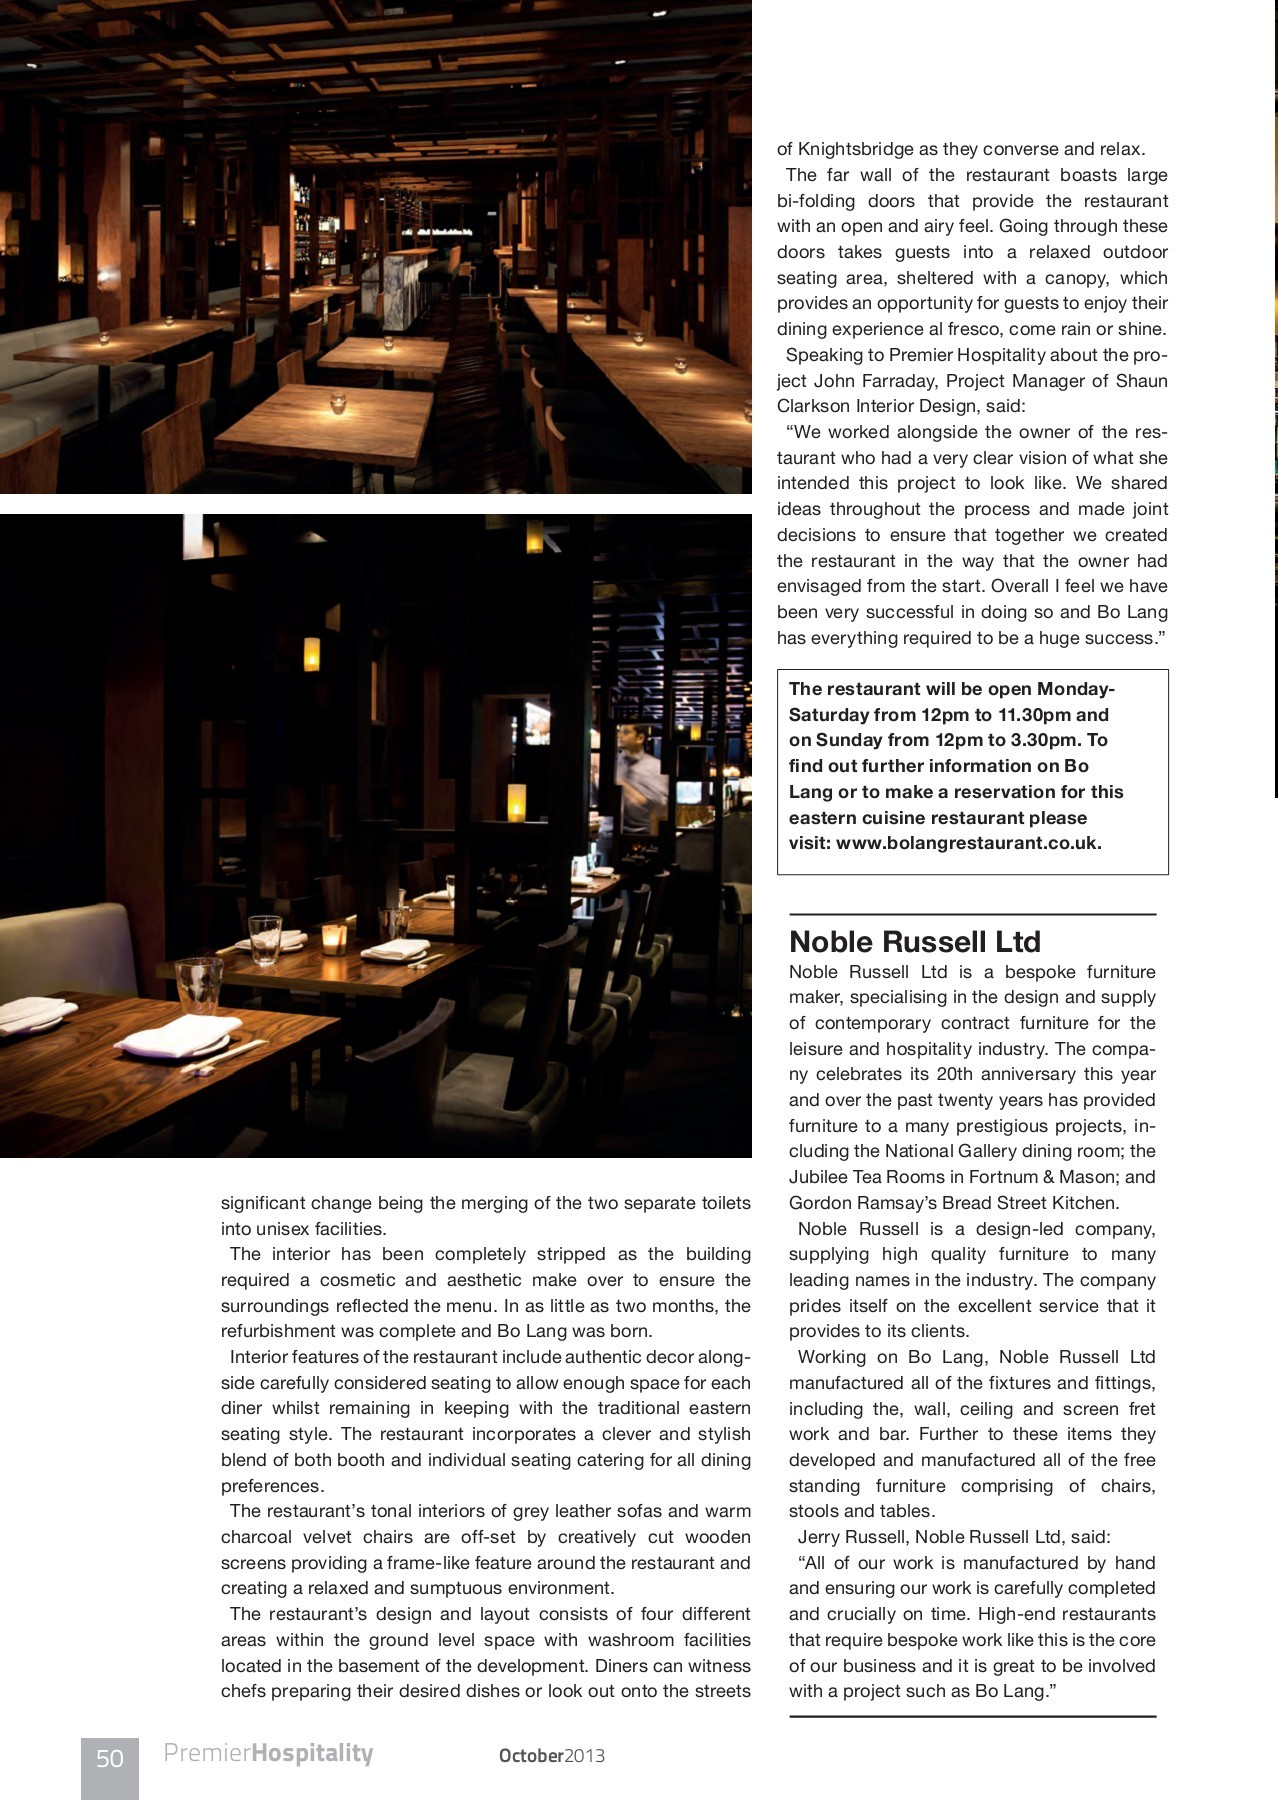 40 Tivoli Terrace East Dun Laoghaire Premier Hospitality Magazine Issue 2 4 Pages 51 100 Text